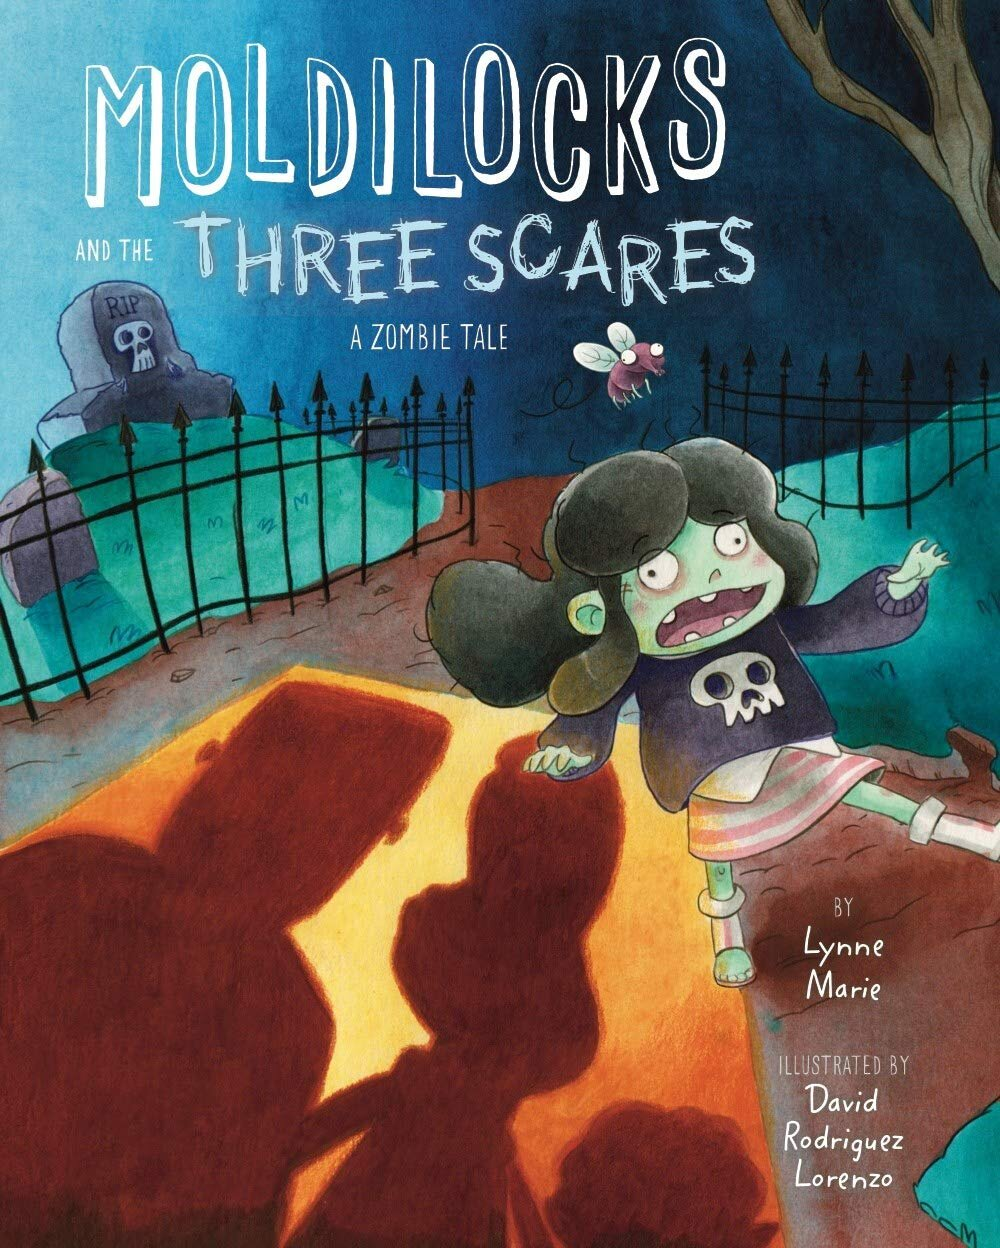 Best Halloween Picture Books of 2019 - Moldilocks and the Three Scares.jpg